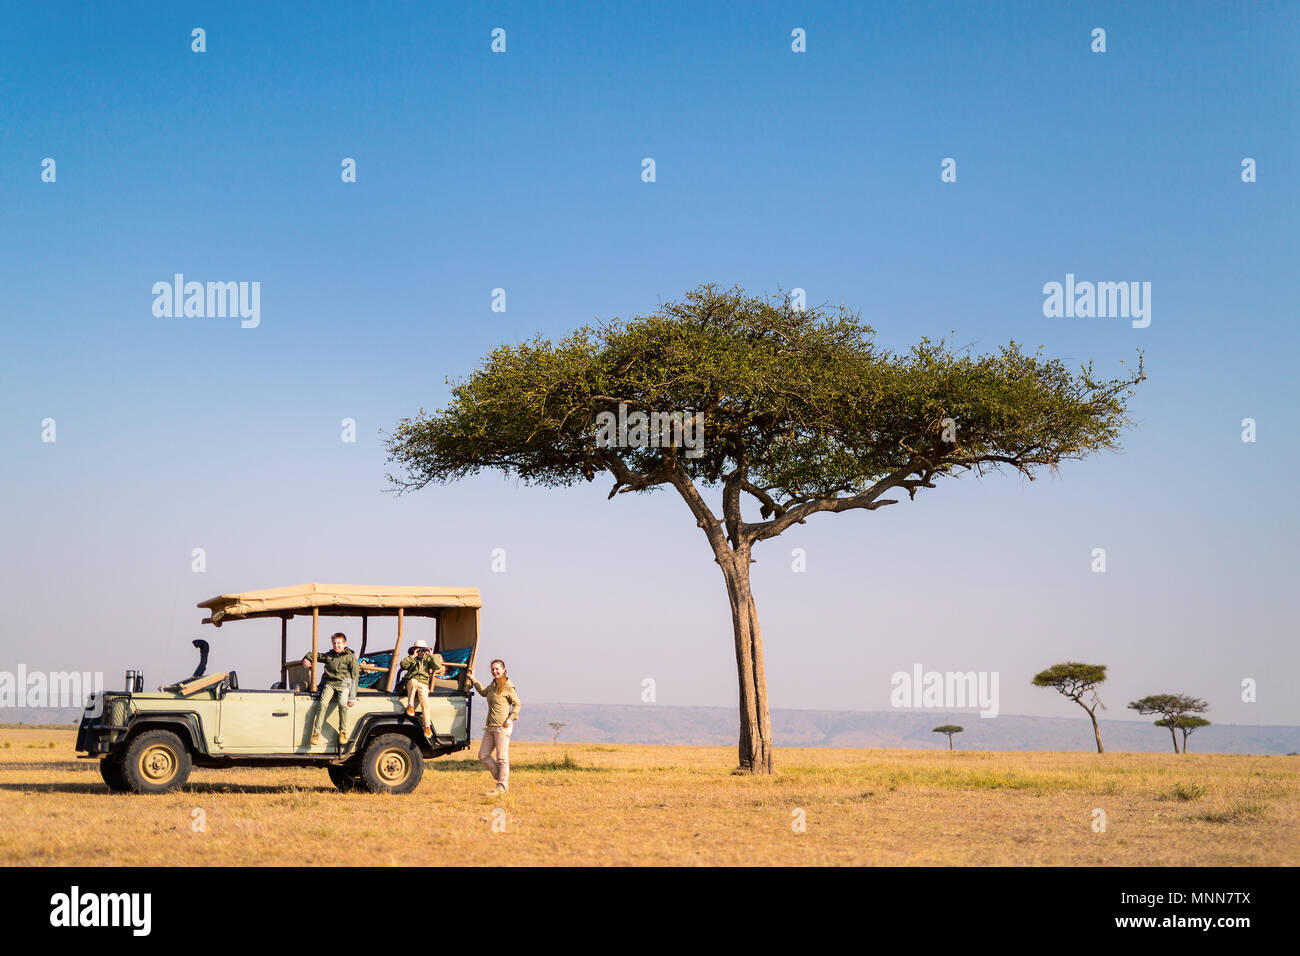 Family of mother and kids on African safari vacation enjoying morning game drive - Stock Image